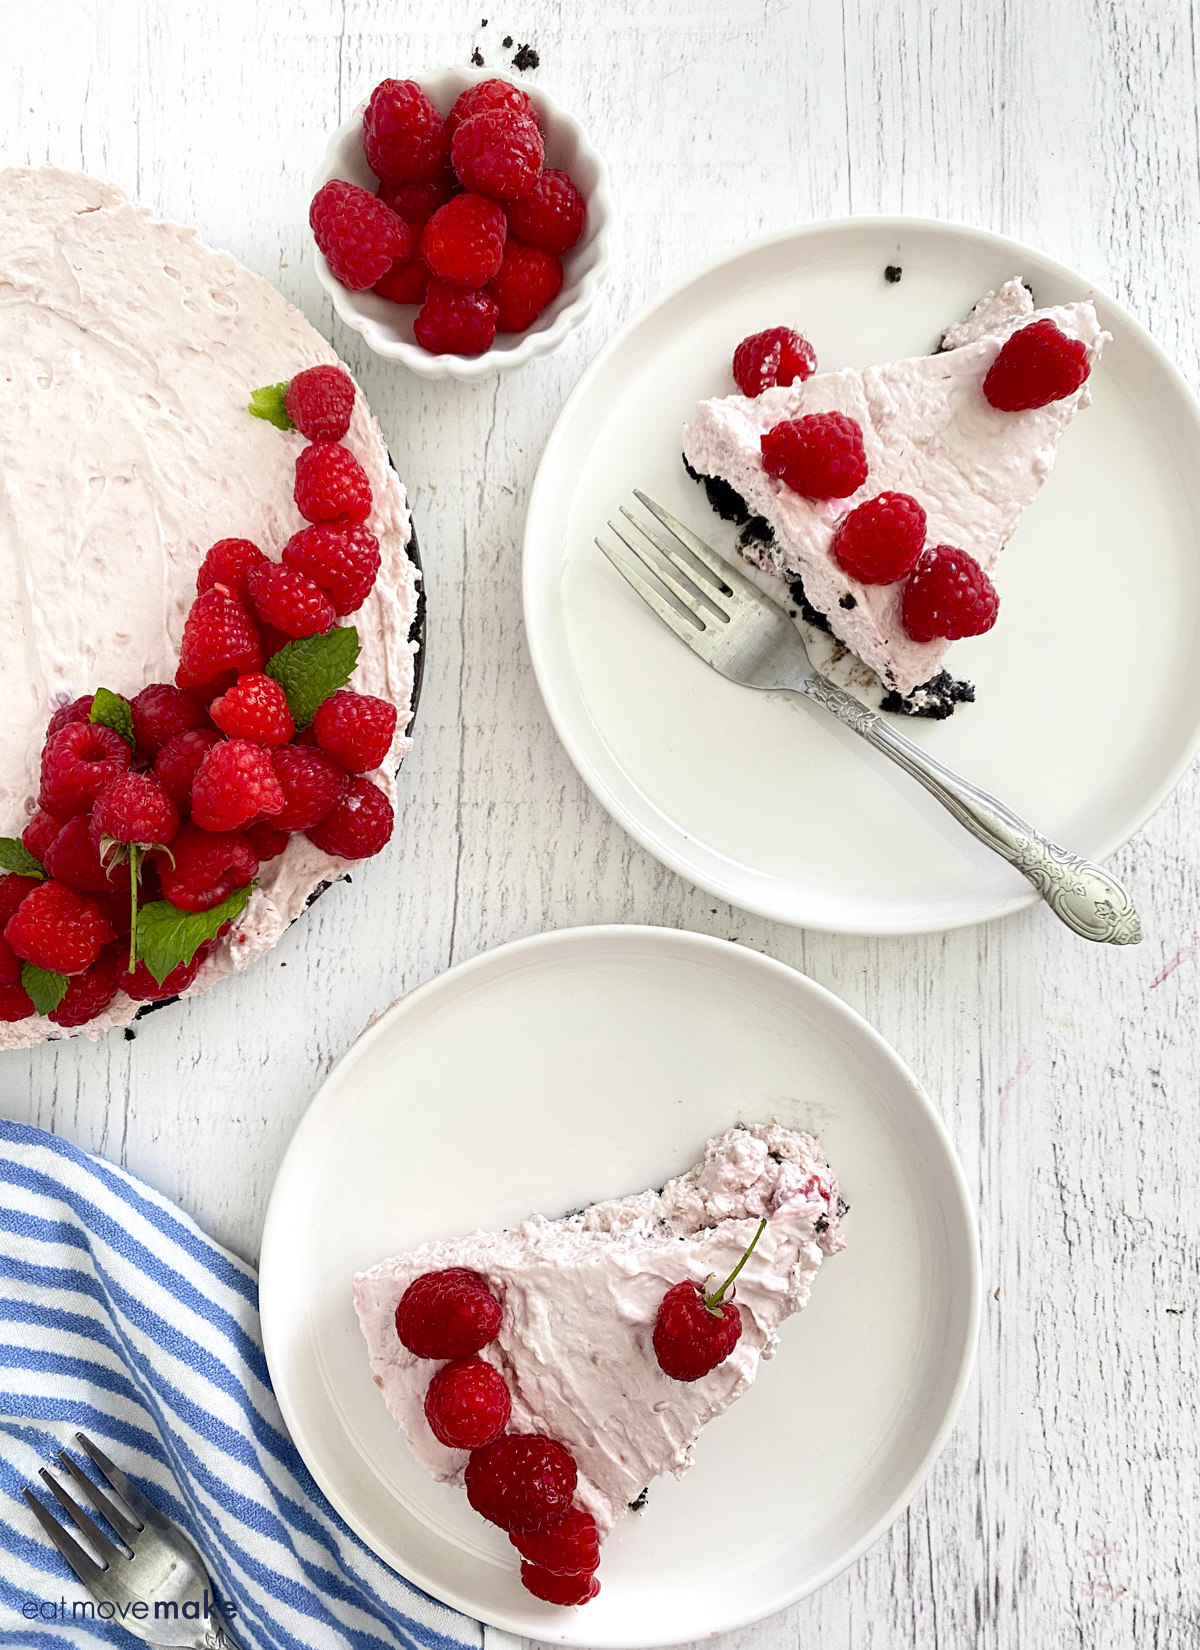 two plates with raspberry pie, bowl of raspberries and whole raspberry no bake cheesecake on white table